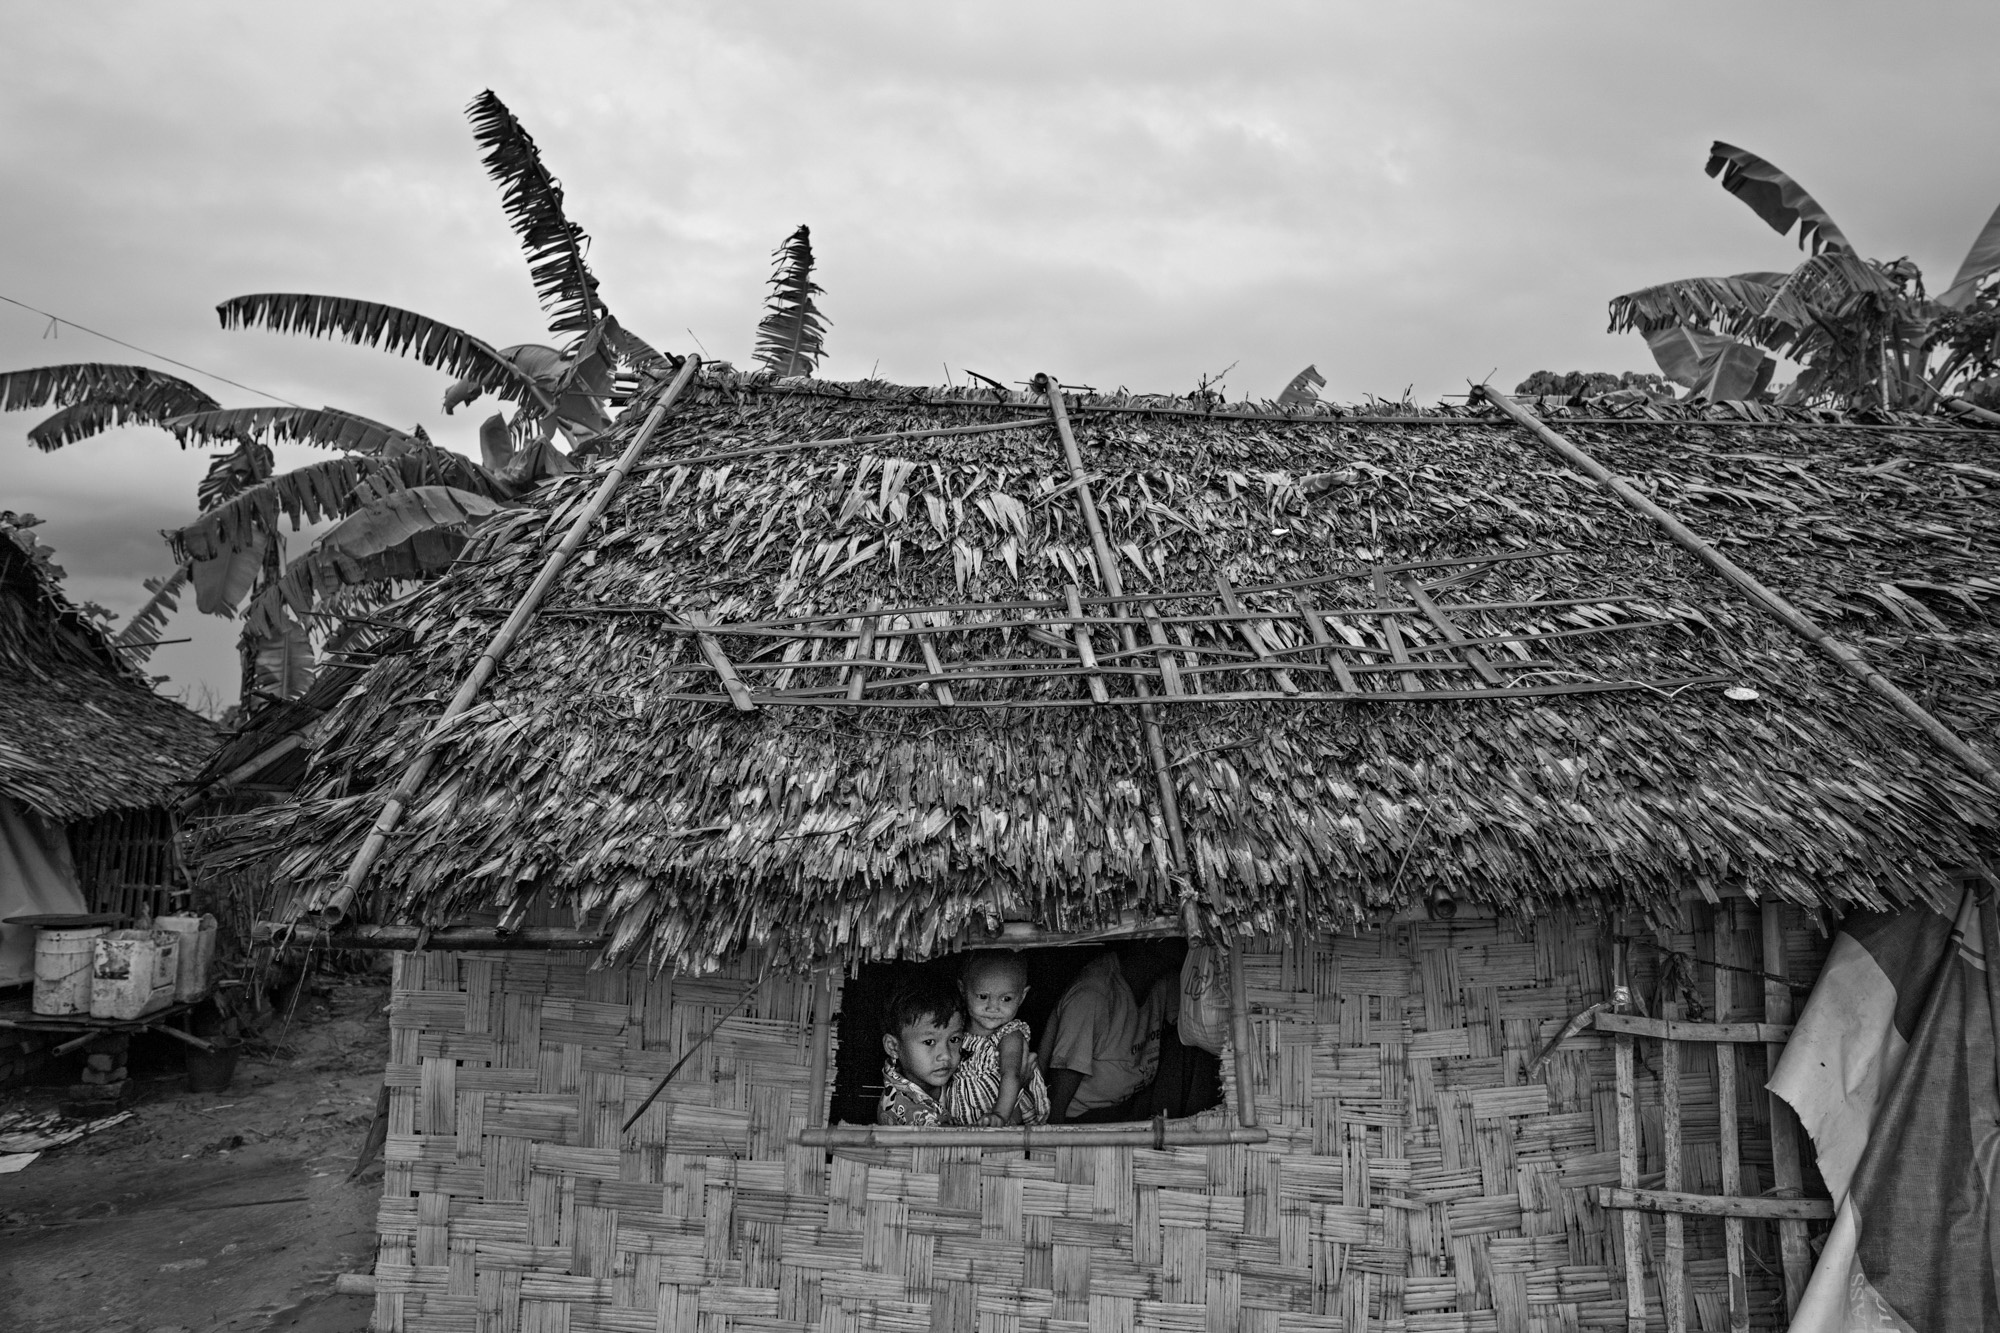 Saung Ning Wai holds her baby sister, Sandar Lin, as they gaze out of their hut on a rainy afternoon.